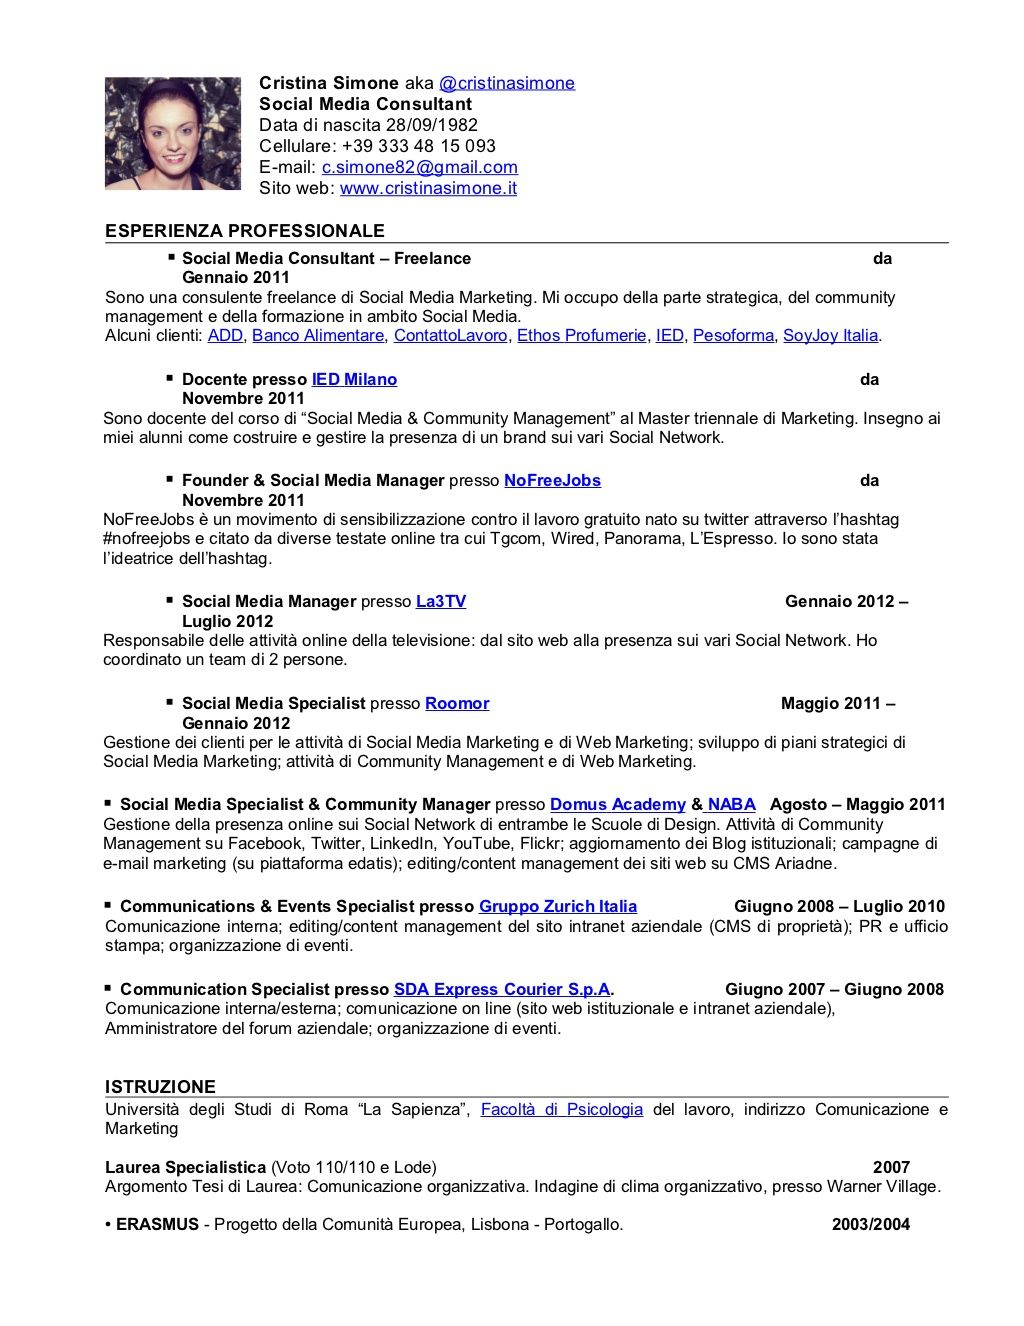 Curriculum Vitae By Cristina Simone Via Slideshare Cv Socialmedia Socialmediamanager Social Media Marketing Consultant Marketing Consultant Social Media